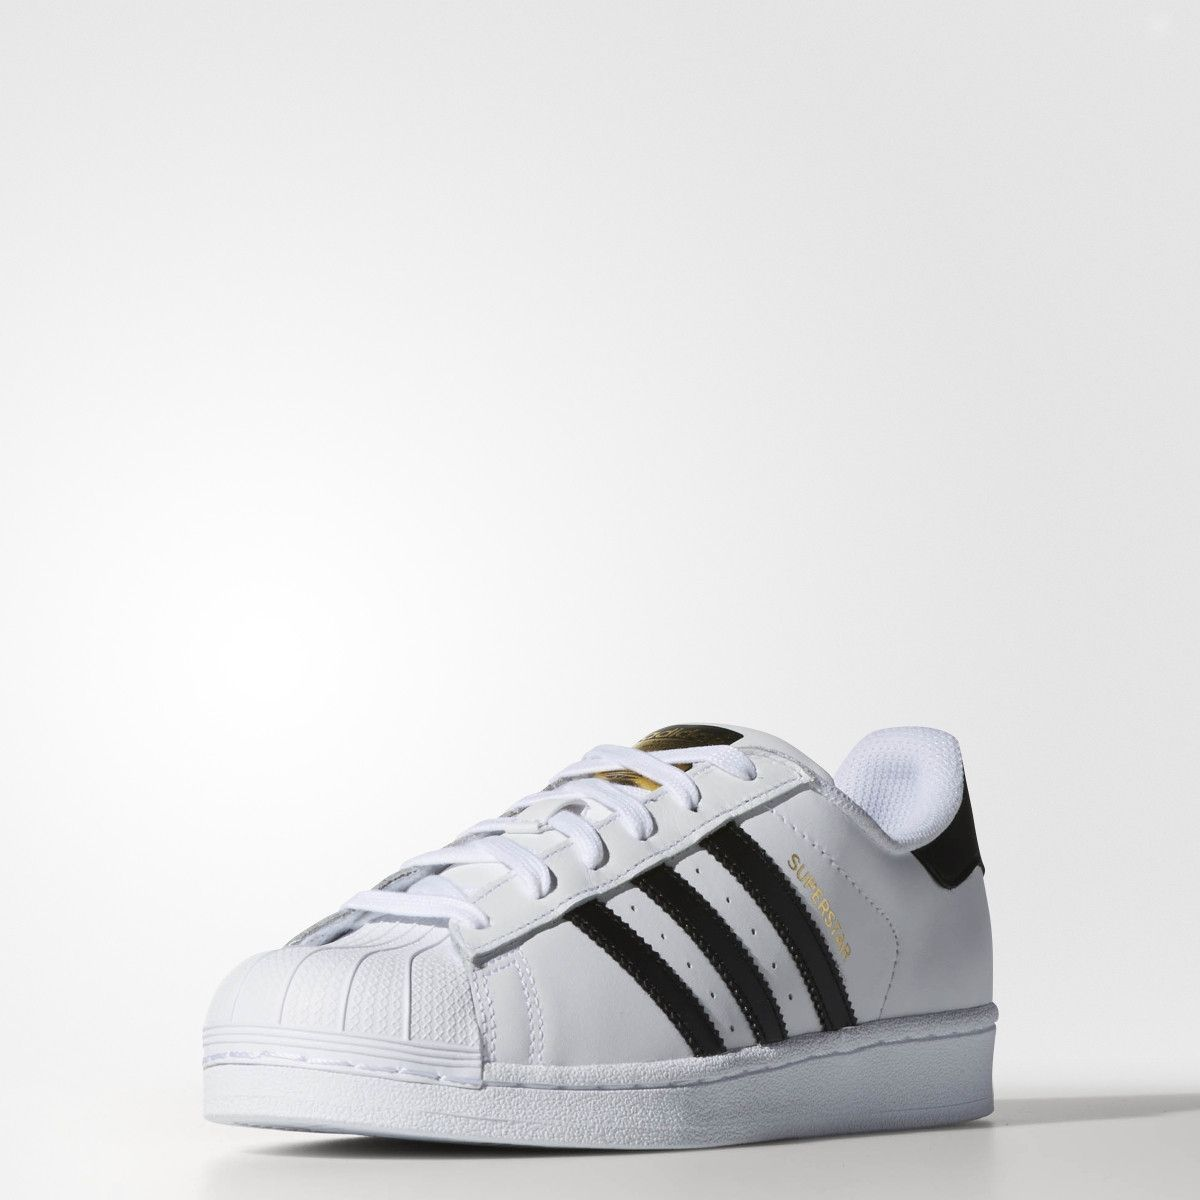 women's adidas shoes grey and white comforter 636766